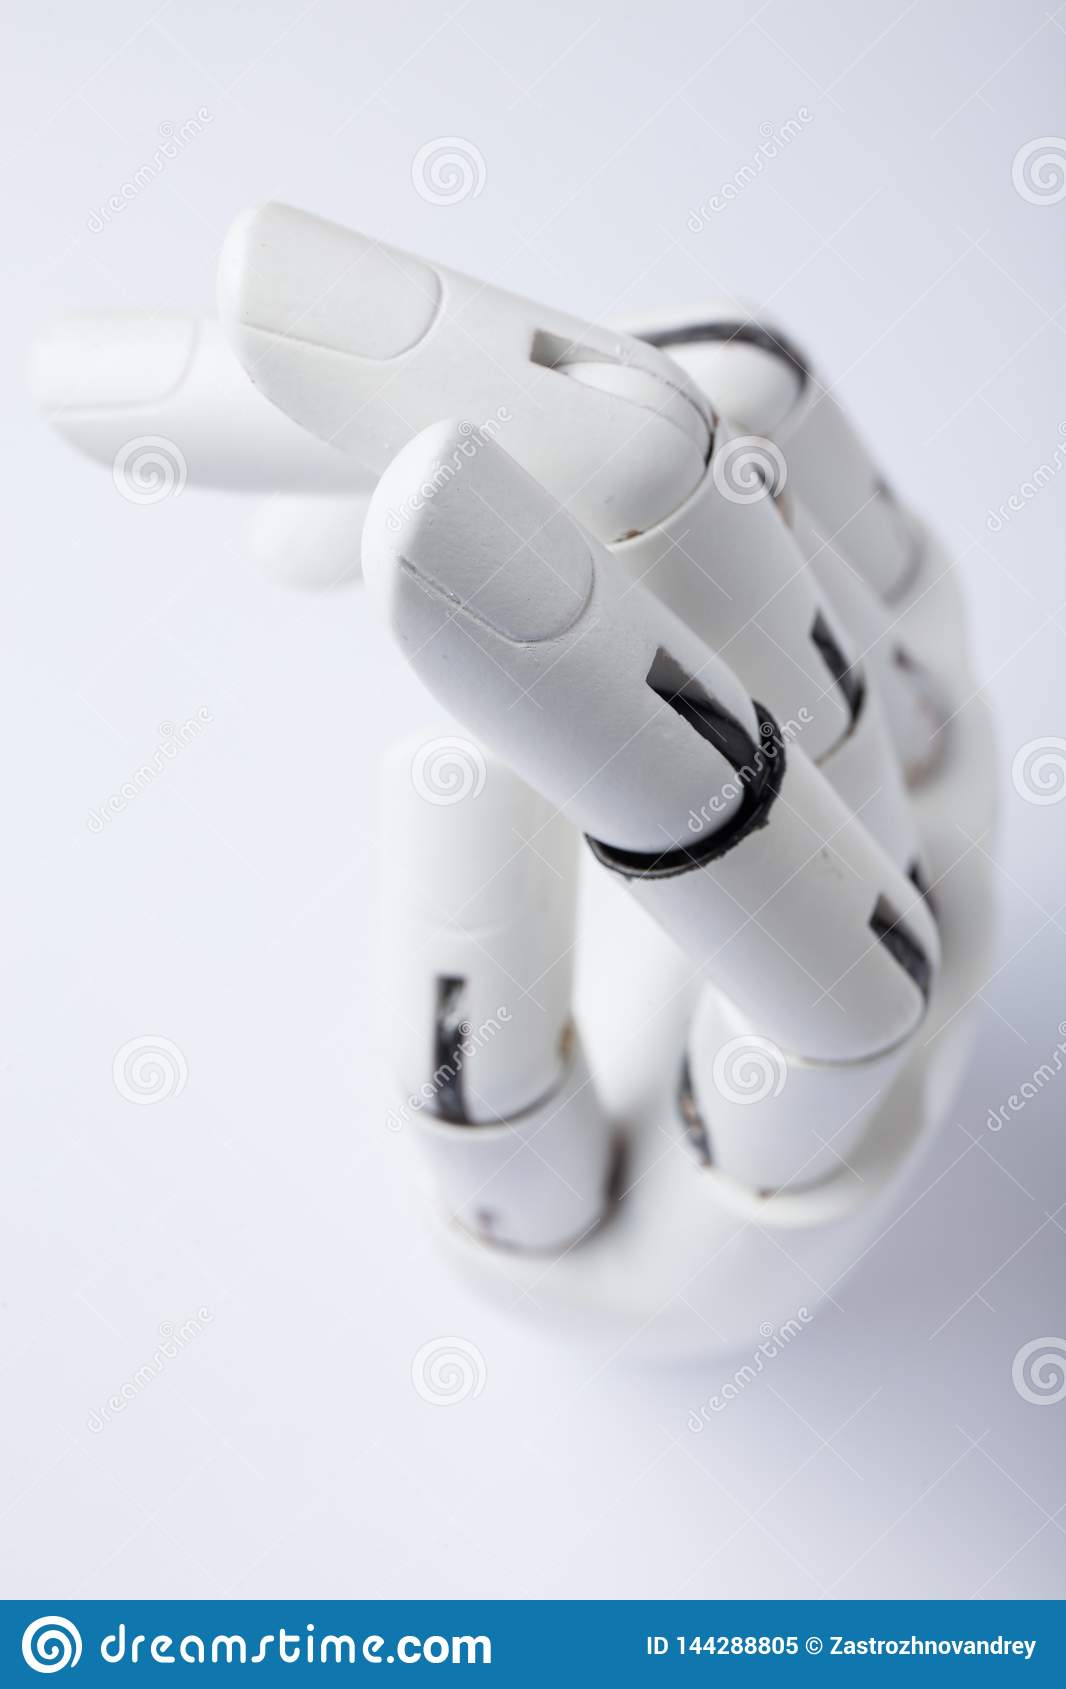 Hand of a robot on a white background